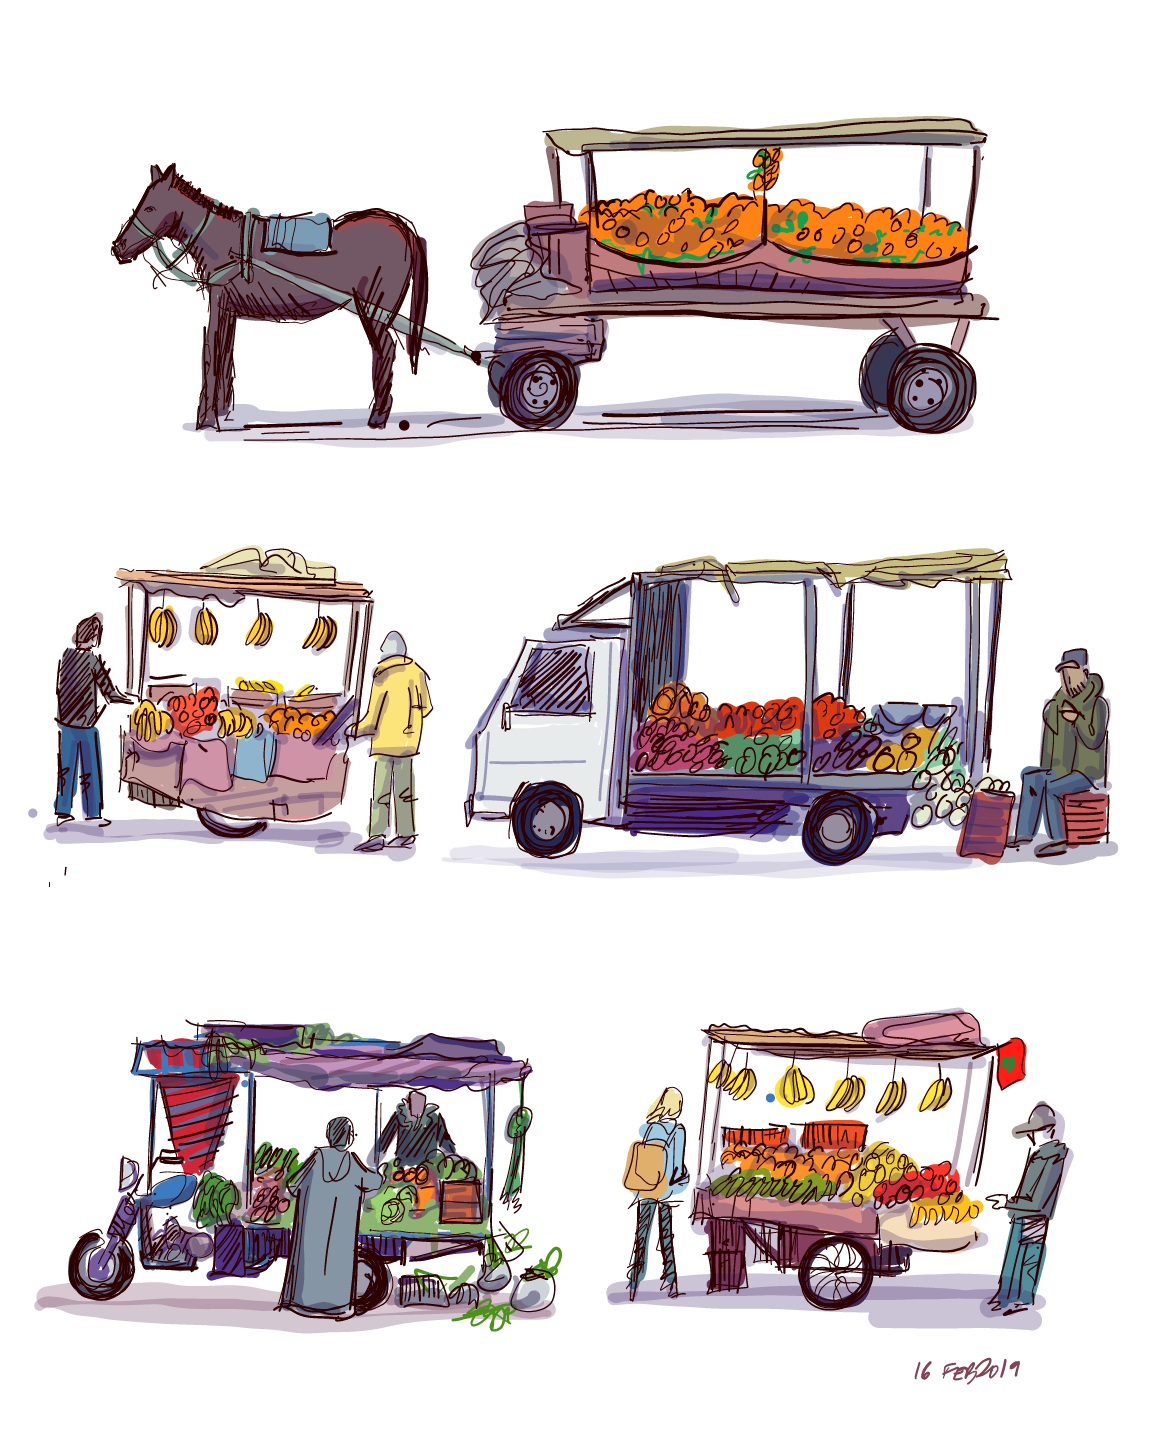 Fruit carts in Marrakech, Morocco